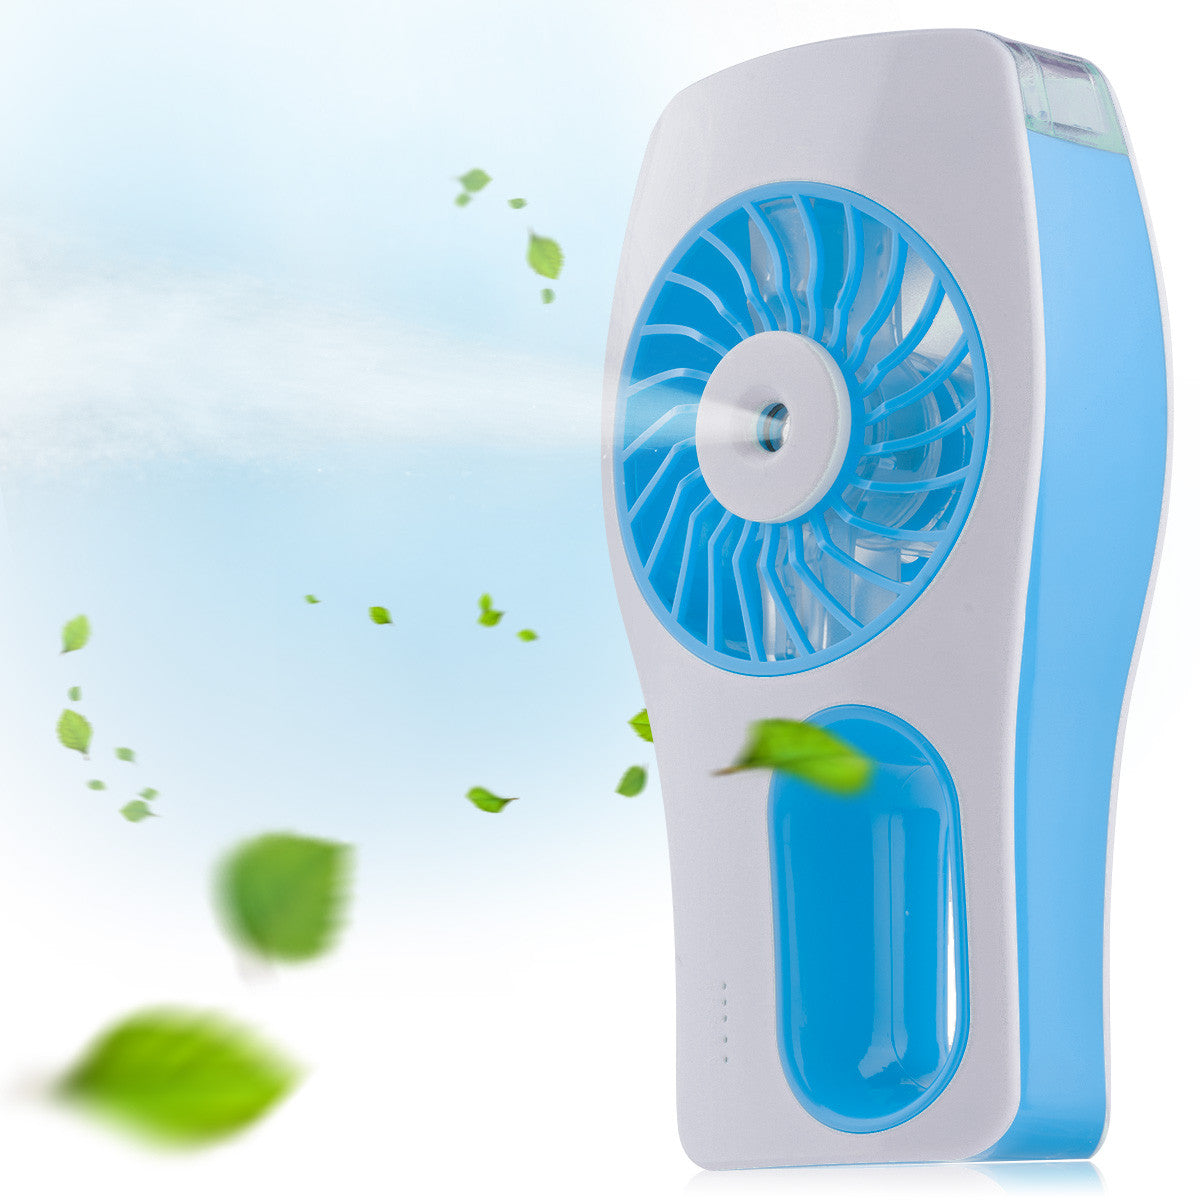 D-FantiX Handheld Fan Battery Operated Portable Misting Fan (Blue)